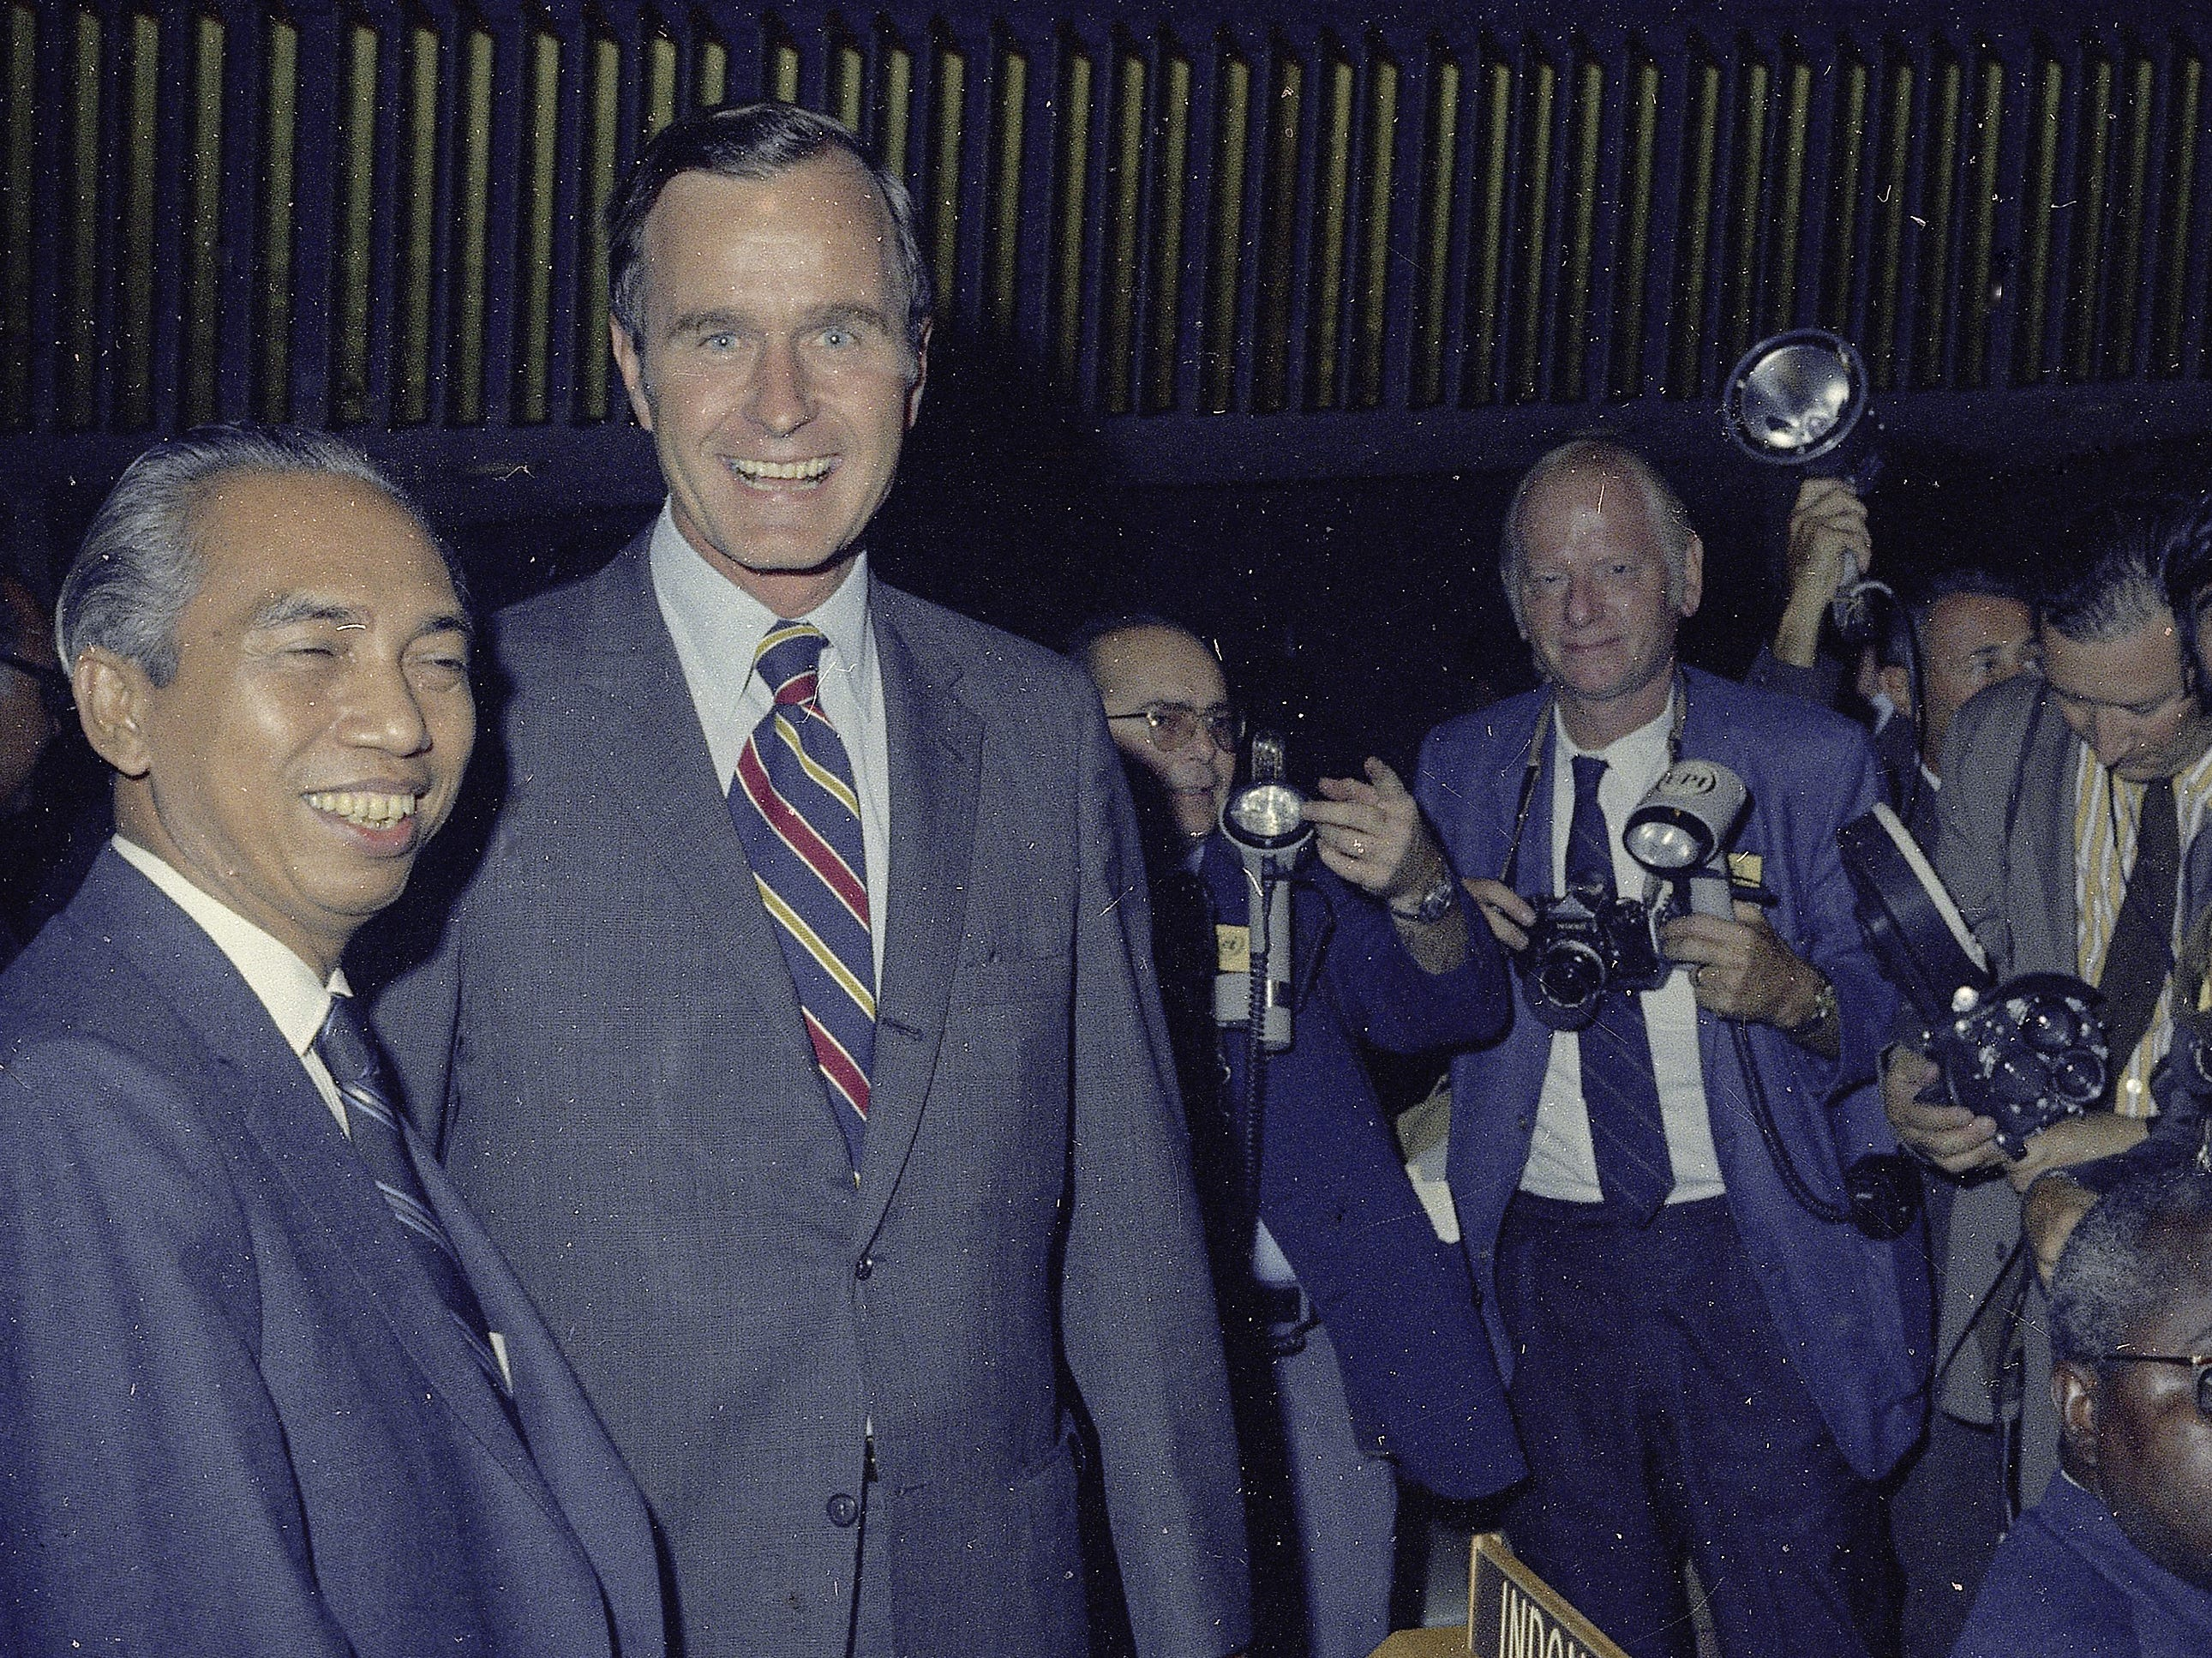 George Bush, right, U.S. Ambassador to the United Nations, with Indonesian Foreign Minister Adam Malik before the opening of the 26th General Assembly of the United Nations at the headquarters in New York, Tuesday, Sept. 21, 1971. Malik will be president of the 127-nation General Assembly. (AP Photo)